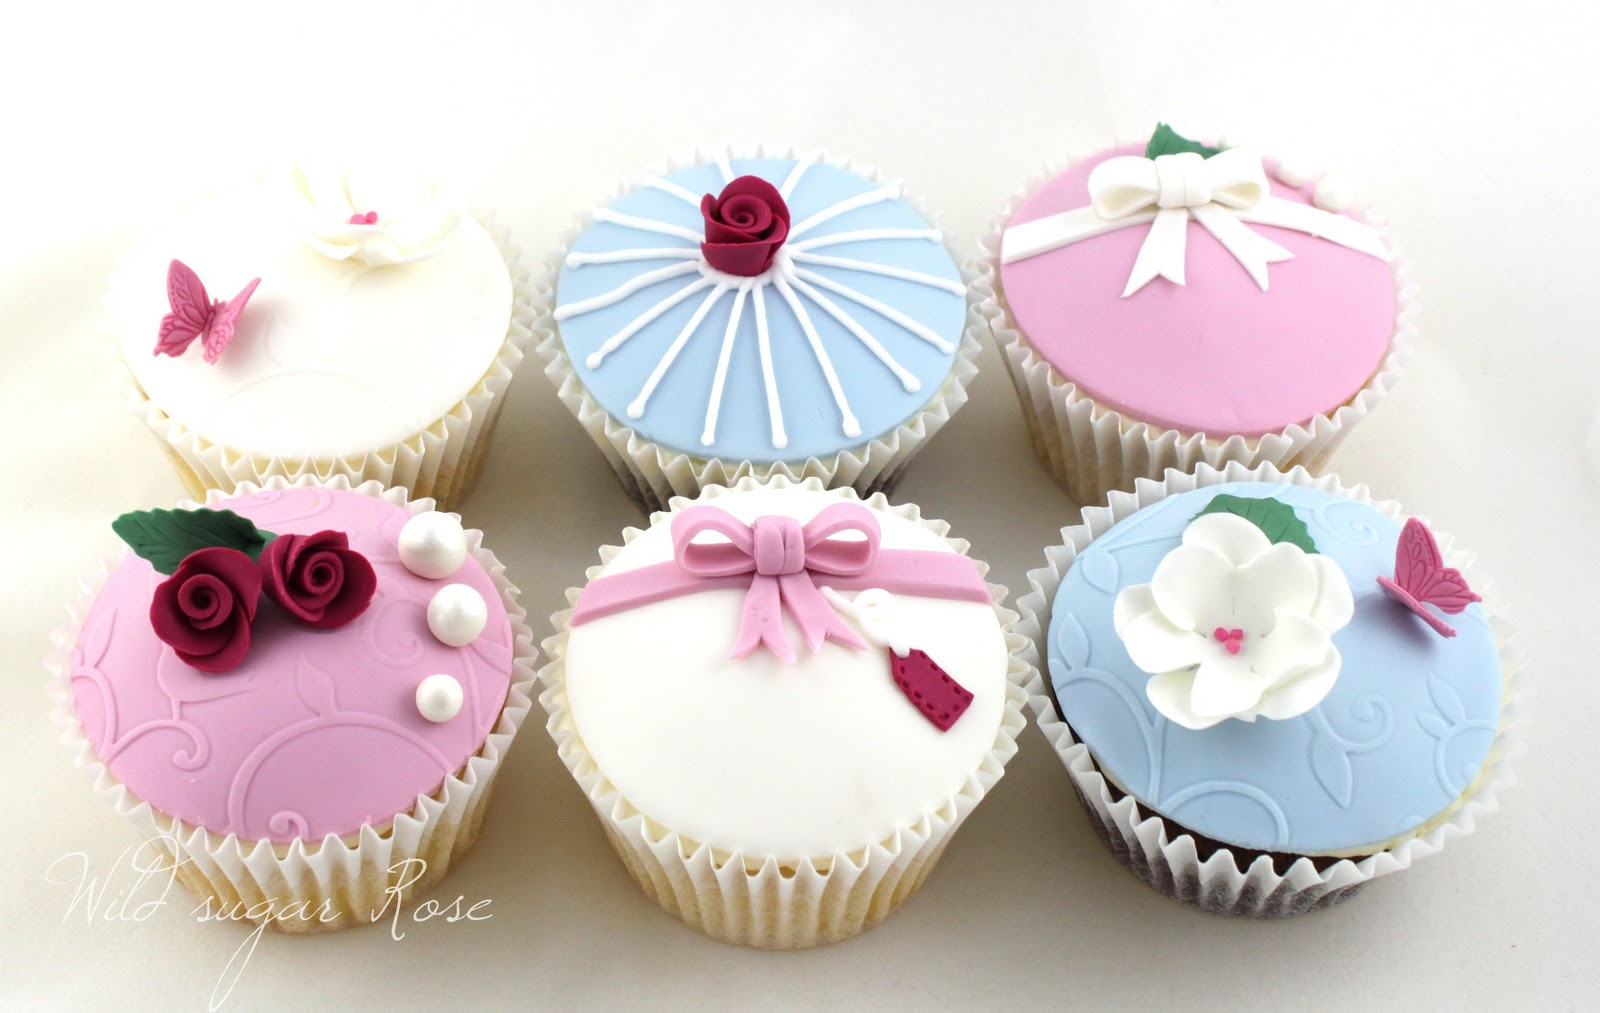 Cake Decorating Classes Perth